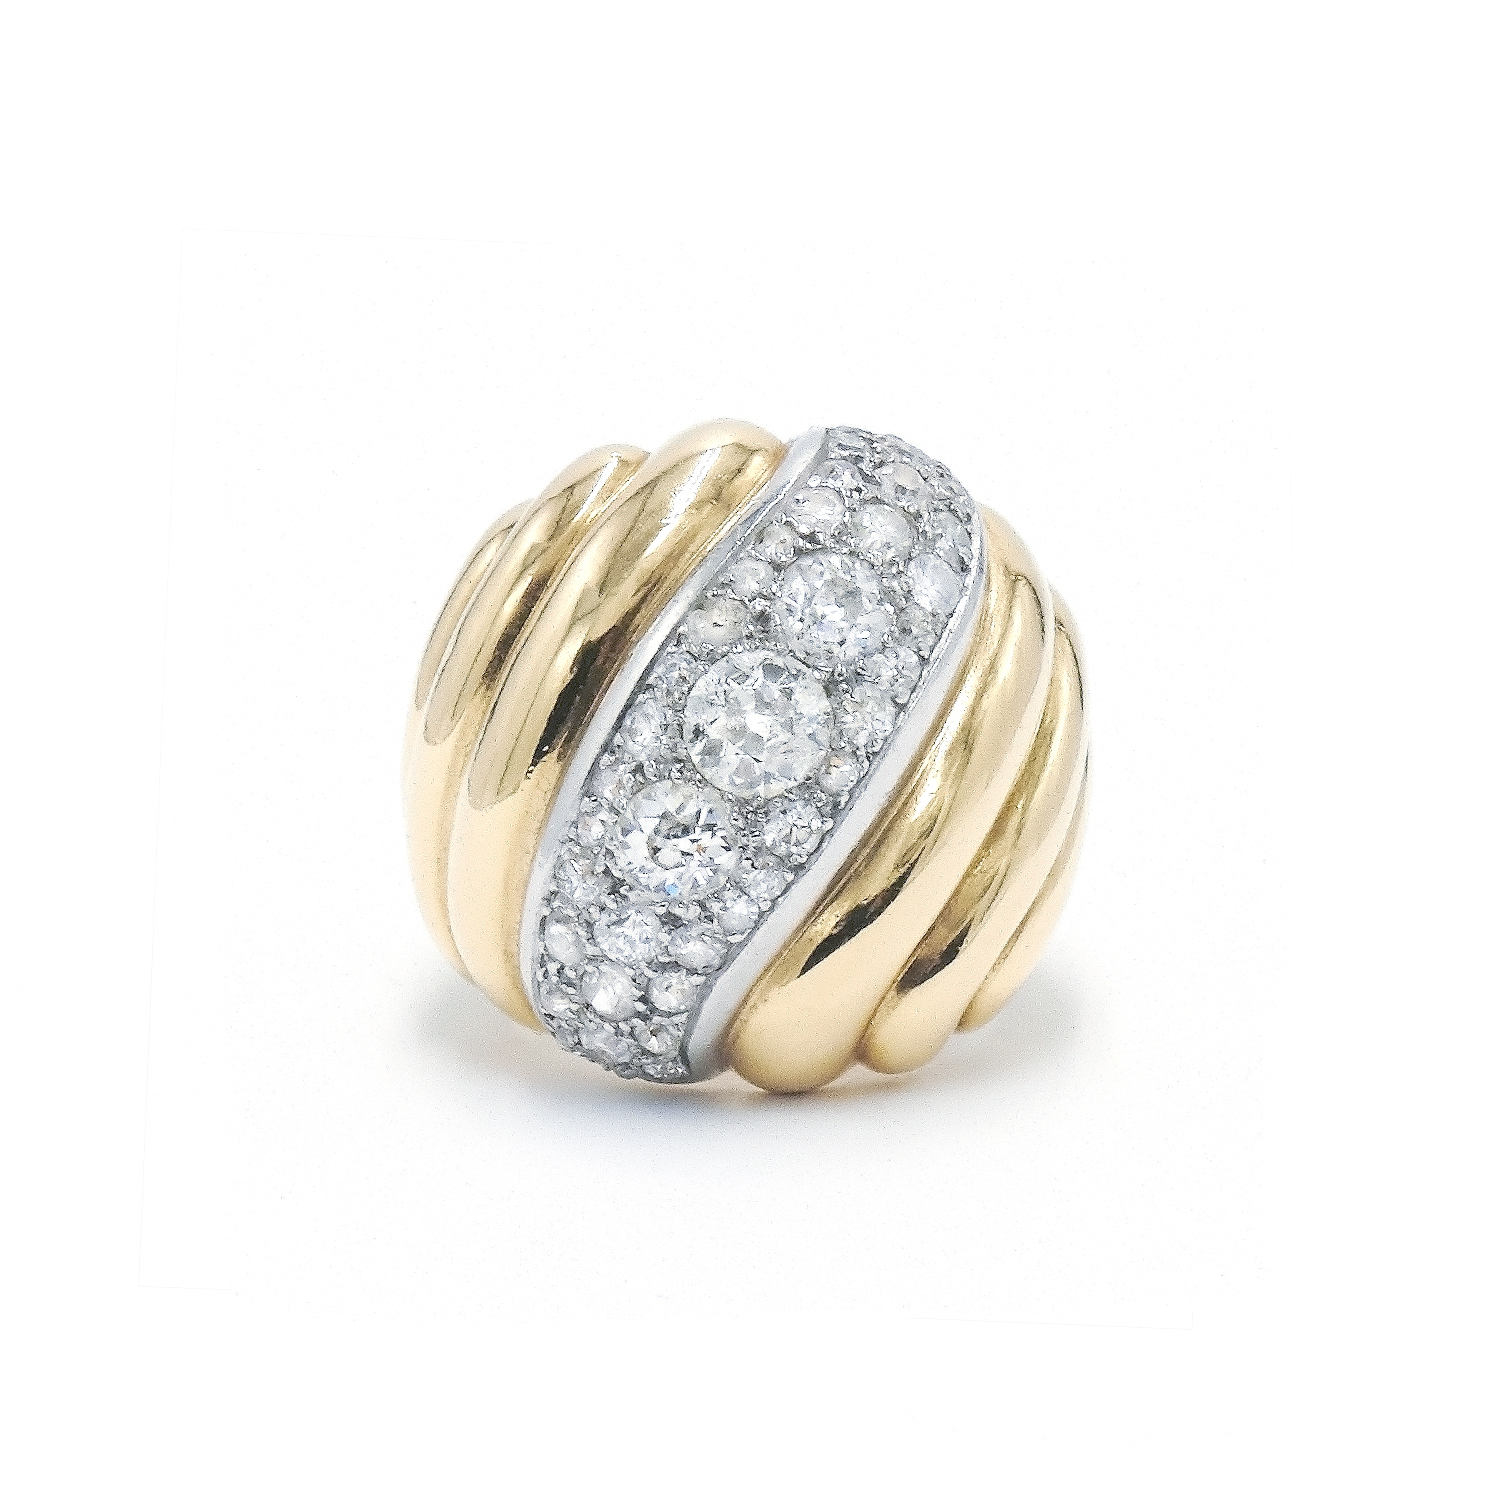 Yellow Gold Bombé Diamond Torsade Ring by Suzanne Belperron Style R-27375-FL-0-0